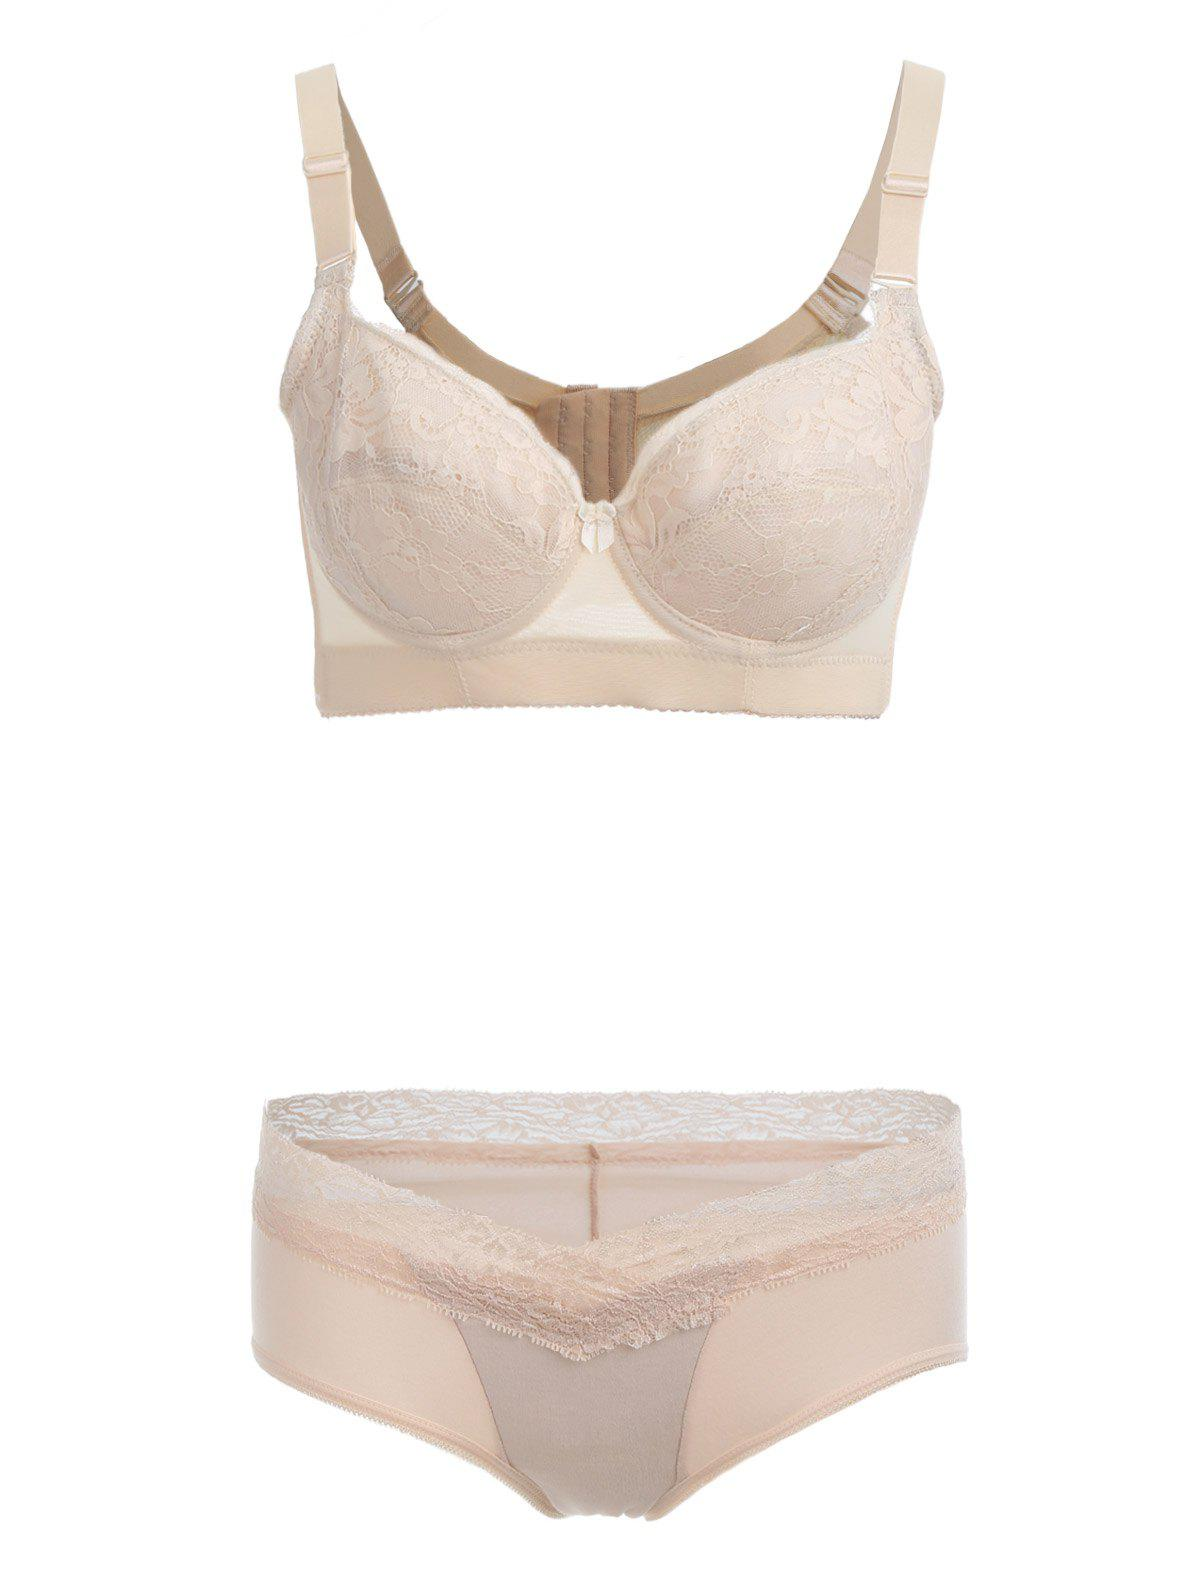 Push Up Lace Insert See Thru Bra Set - SKIN COLOR 90D